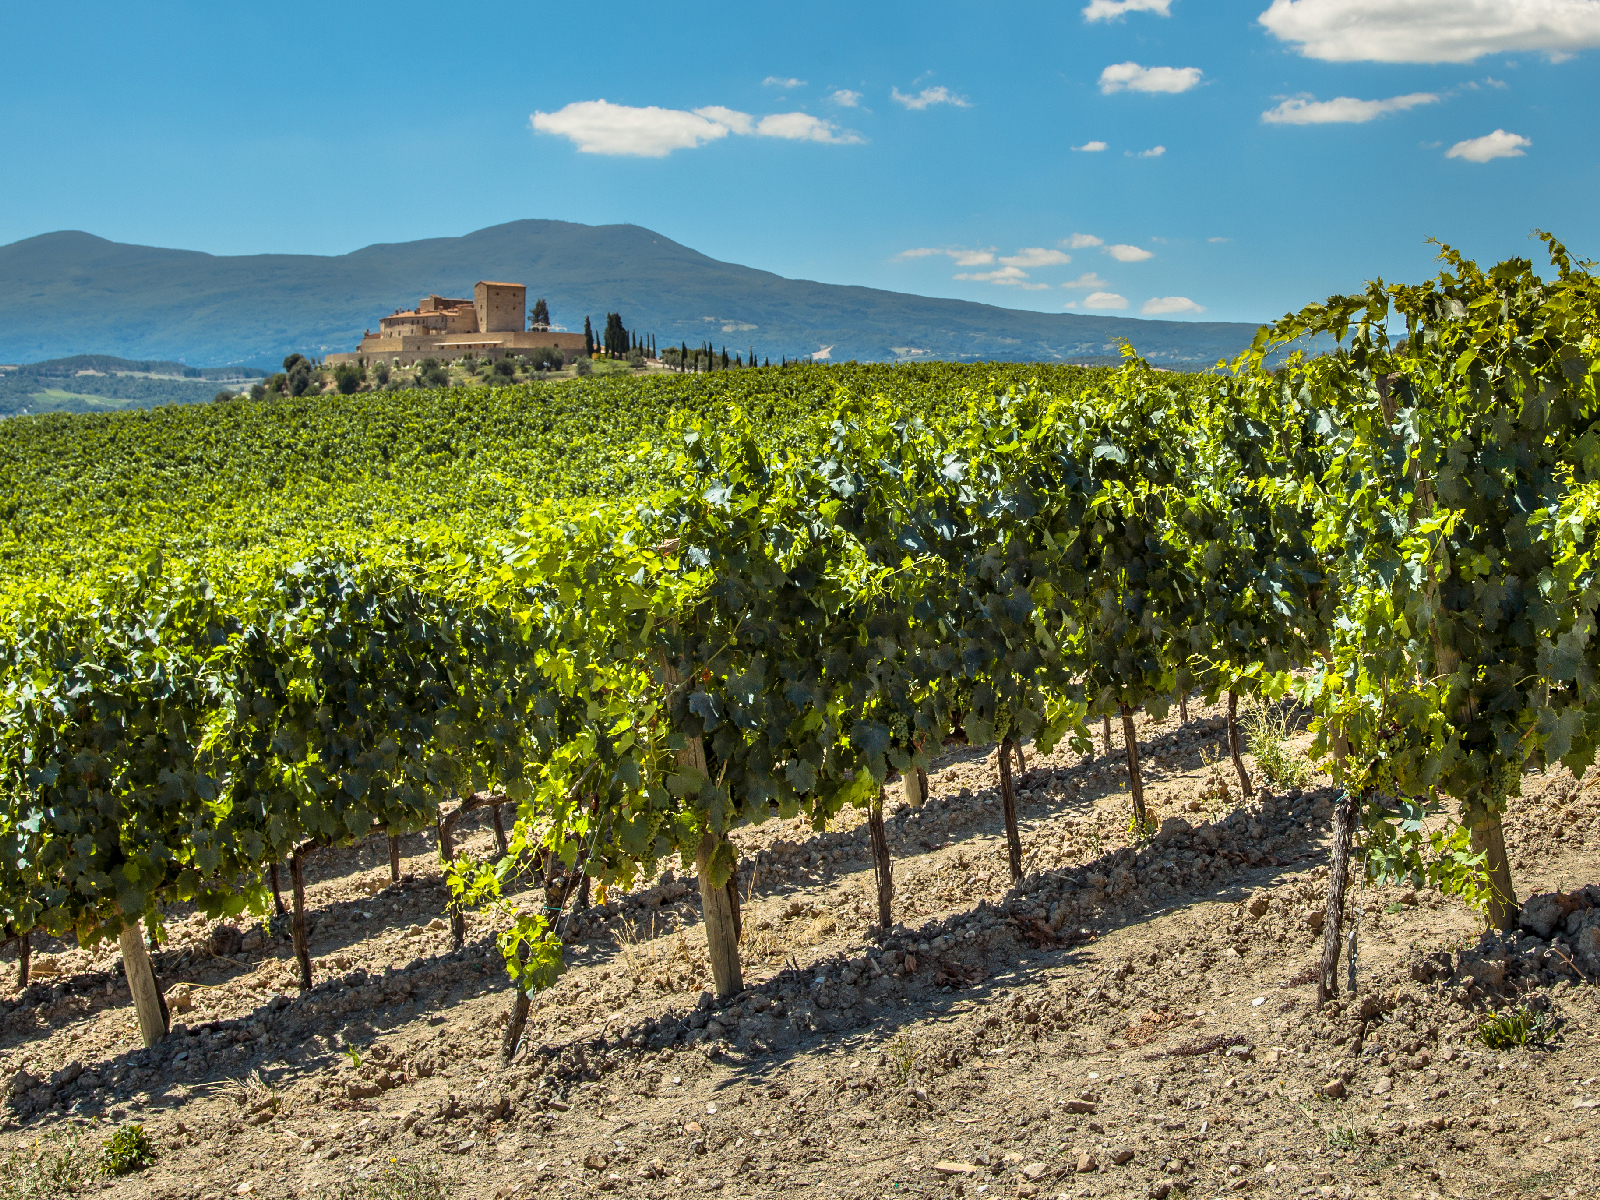 Italian Growers Place Three-Year Ban on New Pinot Grigio Vineyards